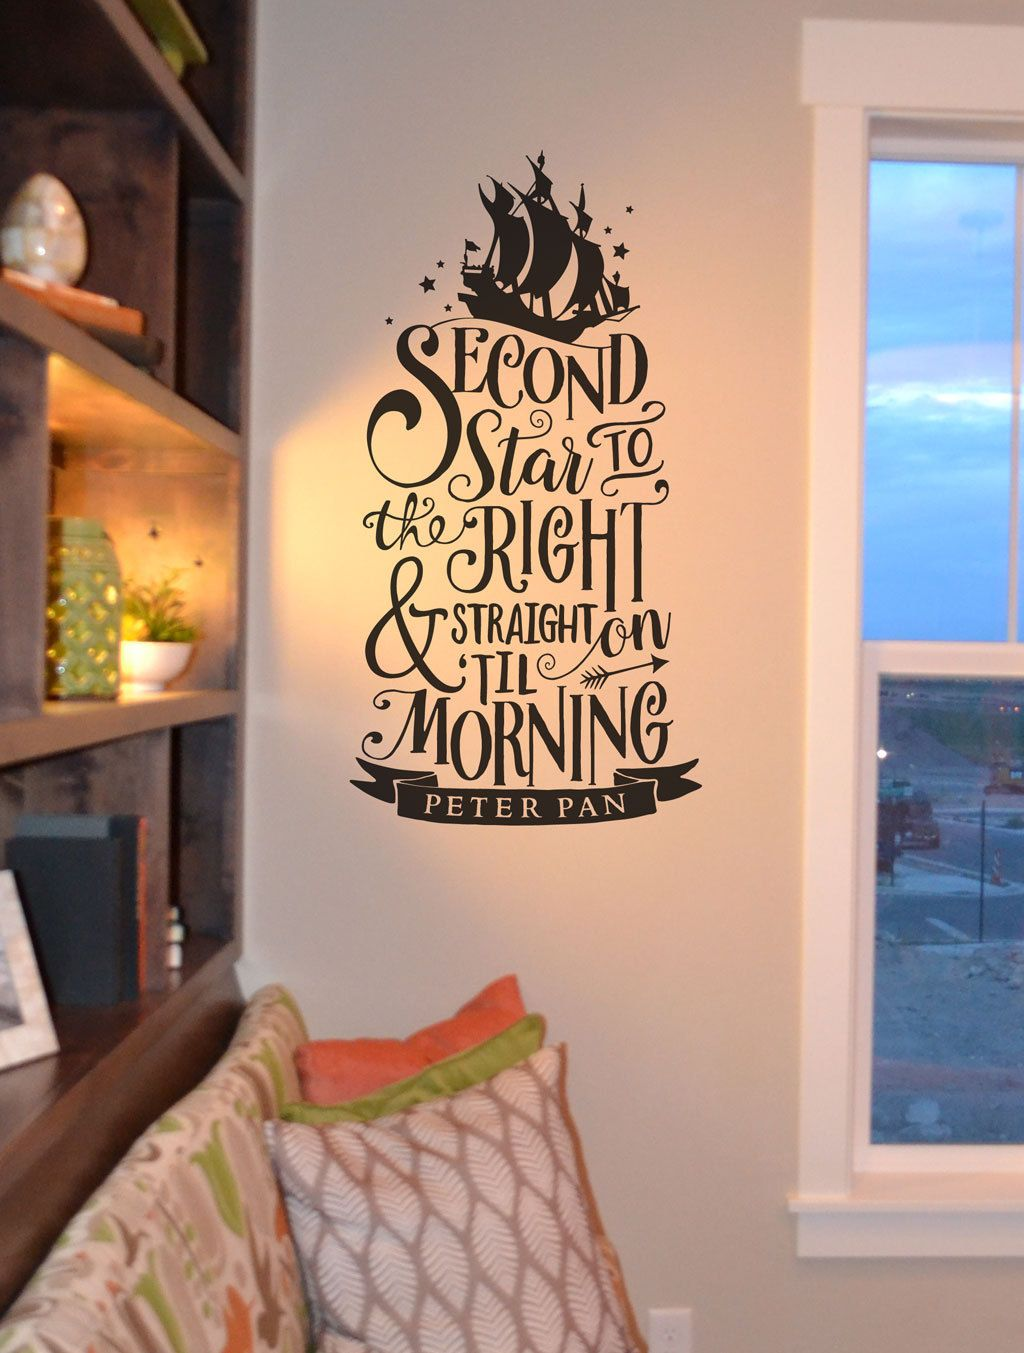 Disney second star to the right quote peter pandecal wall stickers disney wall vinyl home decor walt disney we do disney kw1307